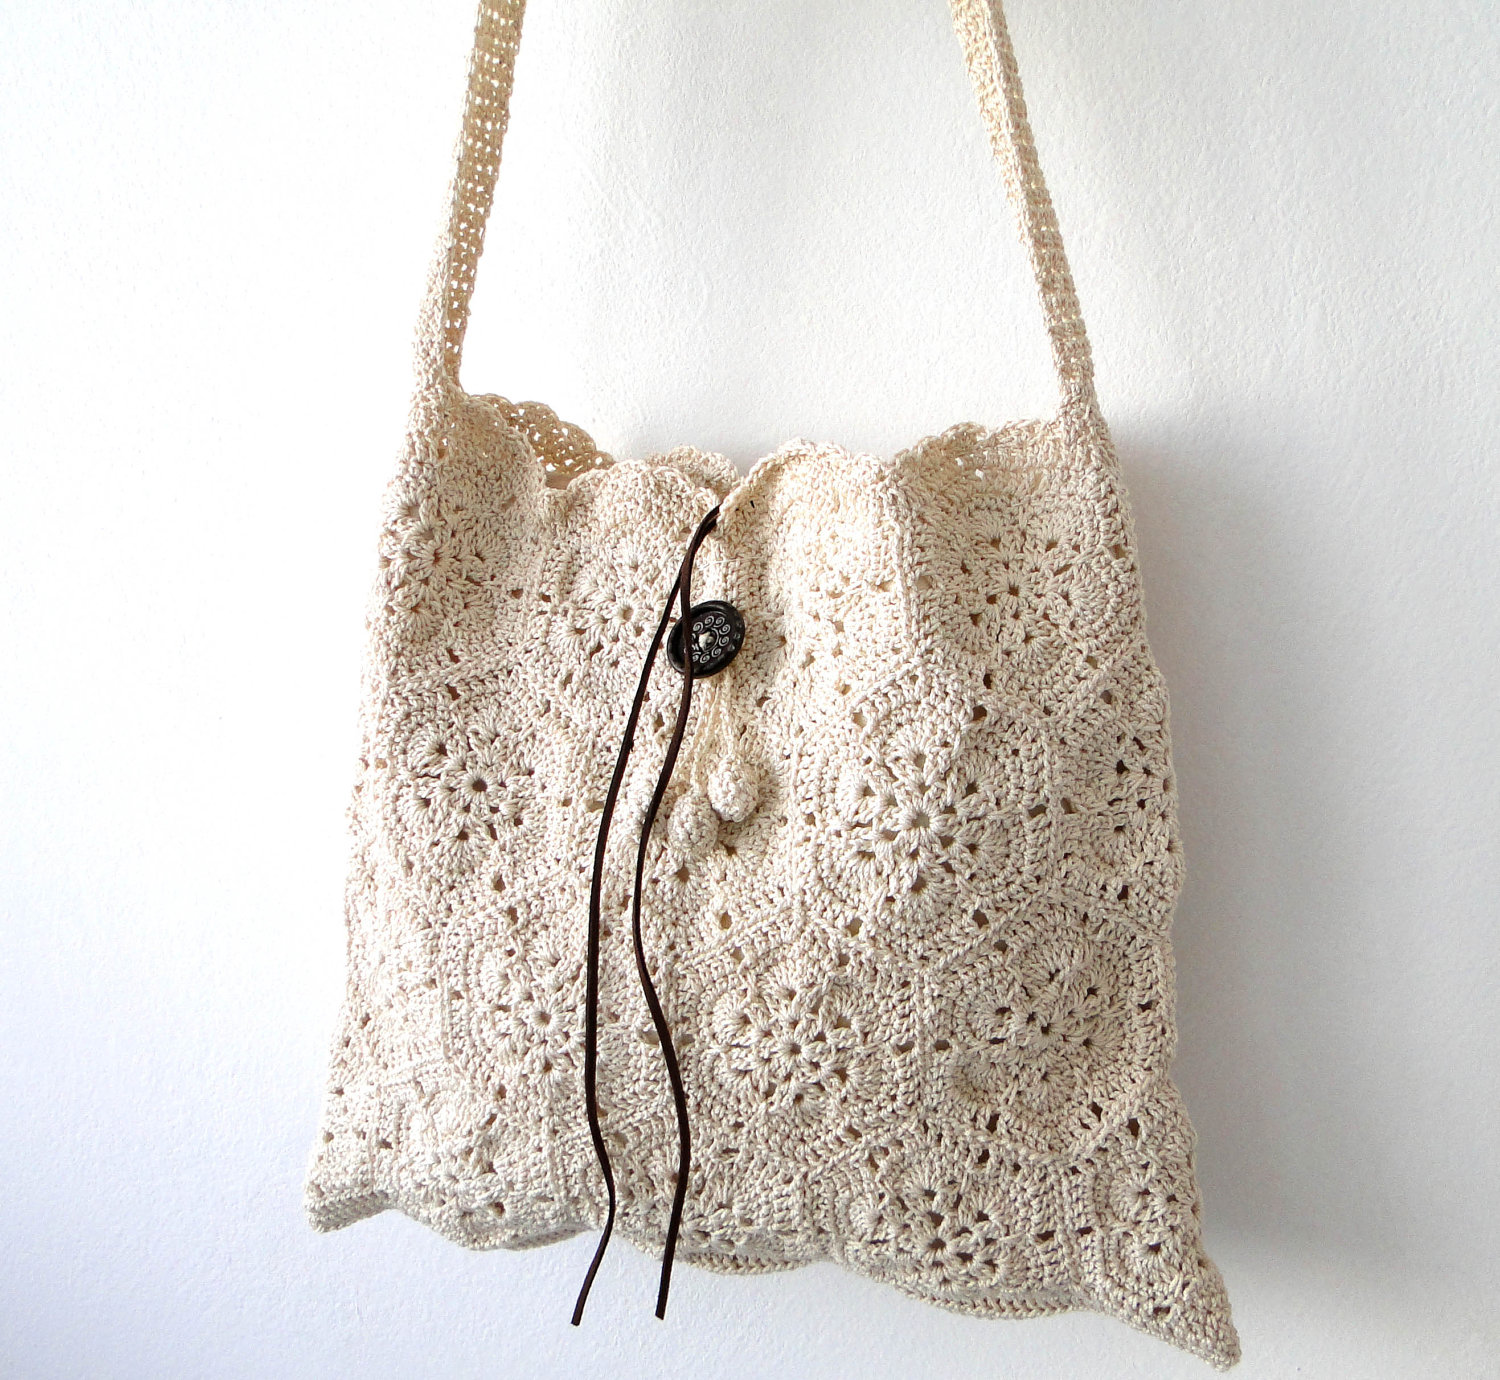 Crochet Shoulder Bag Pattern Free : of free crochet bag patterns. Find free patterns for crocheting bags ...